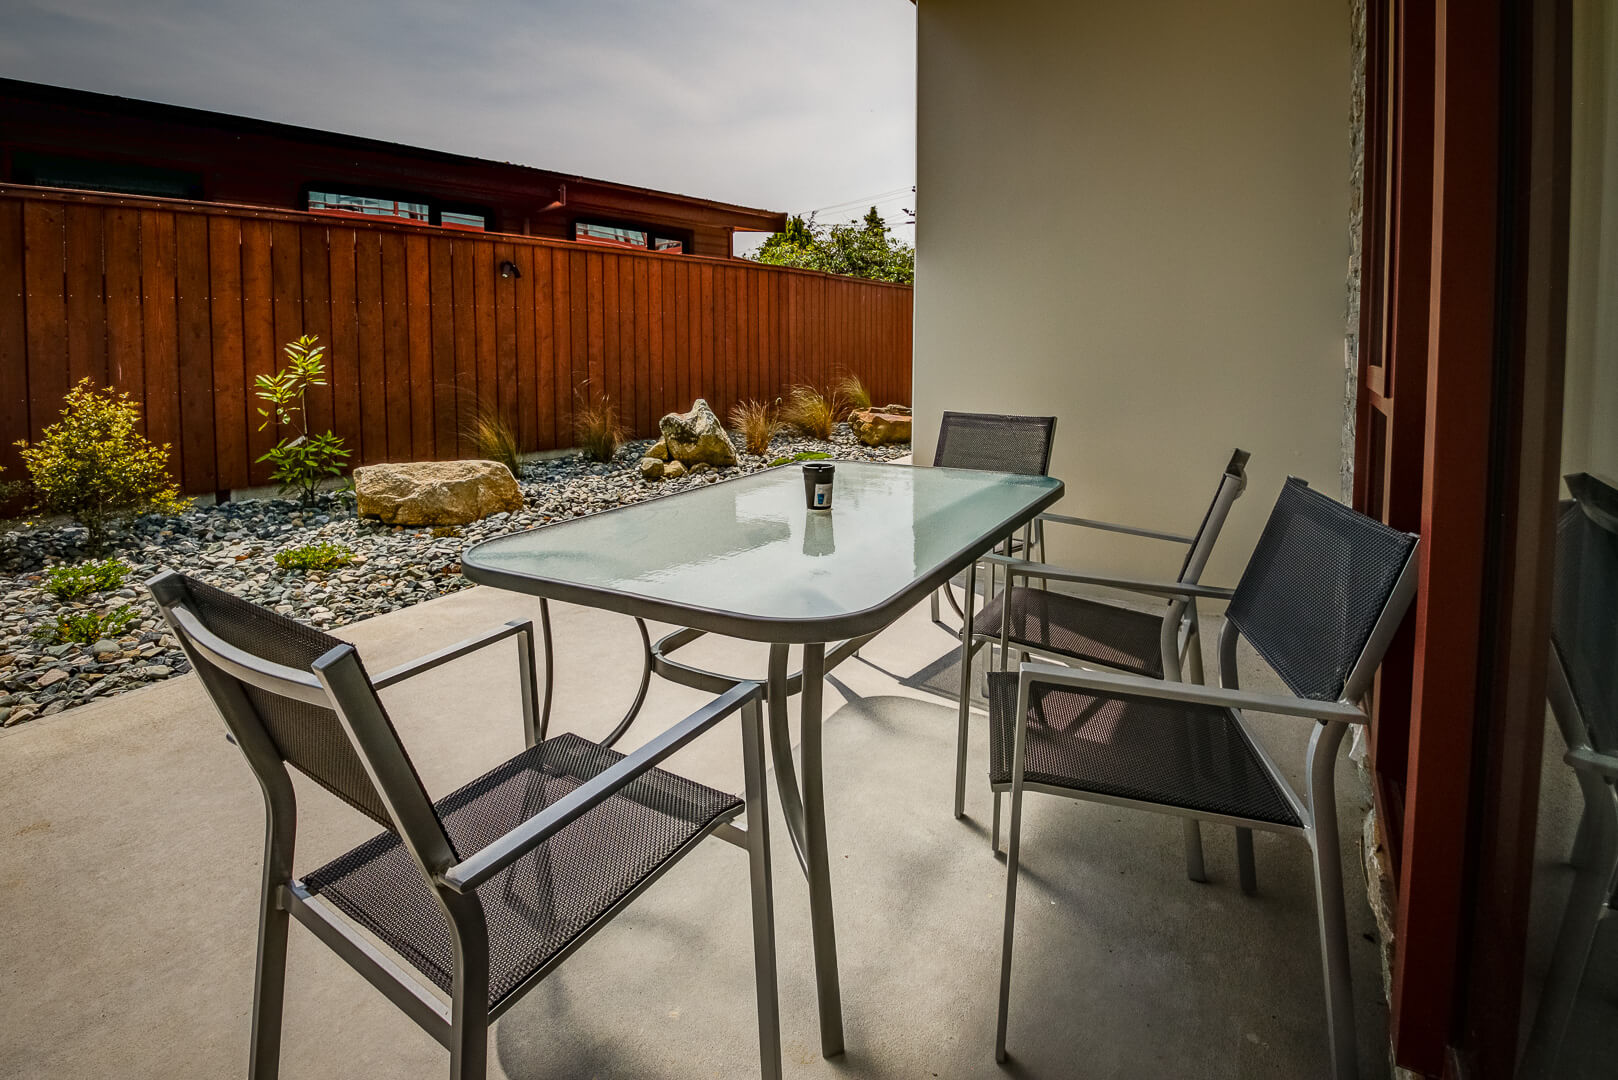 Outdoor table and chairs on the patio of Red Tussock Motel's ground floor unit.